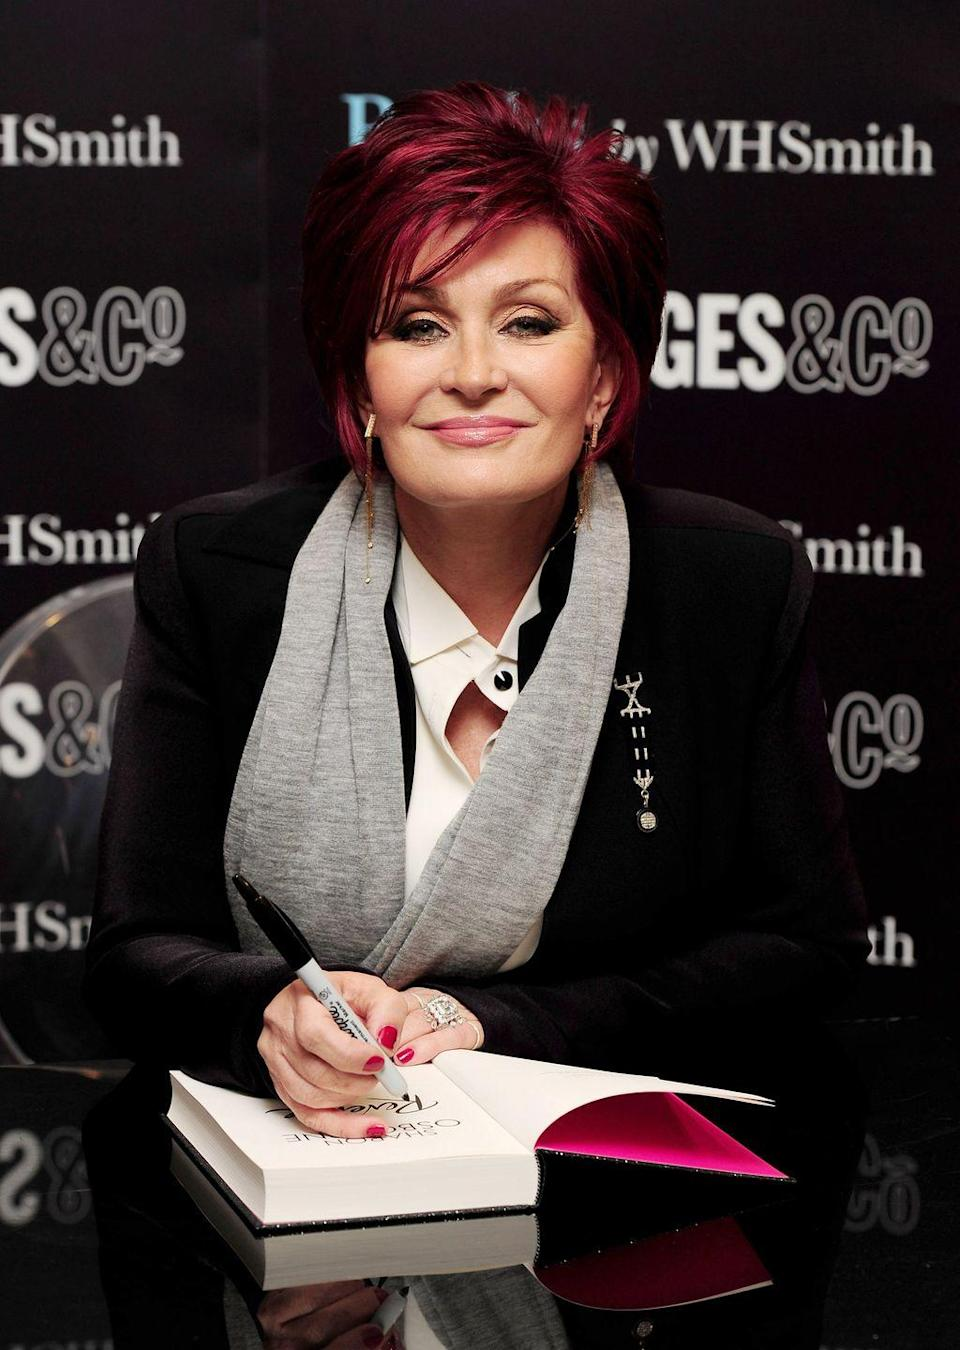 "<p>After two autobiographies, one of which became the best-selling autobiography by a woman since the category started being tracked when it was released, according to the <em><a href=""https://www.independent.ie/entertainment/books/review-revenge-by-sharon-osbourne-26634059.html"" rel=""nofollow noopener"" target=""_blank"" data-ylk=""slk:Independent"" class=""link rapid-noclick-resp"">Independent</a></em>, Sharon Osbourne turned her attention to fiction. Instead of the expected downfall of a romantic relationship, <em>Revenge</em> tells the story of the competitive dynamic between two sisters who fight over men and fame and have a lot of sex along the way. </p><p>If you're looking for some salacious drama, look no further. </p><p><a class=""link rapid-noclick-resp"" href=""https://www.amazon.com/Revenge-Sharon-Osbourne/dp/0751542334?tag=syn-yahoo-20&ascsubtag=%5Bartid%7C2139.g.34385633%5Bsrc%7Cyahoo-us"" rel=""nofollow noopener"" target=""_blank"" data-ylk=""slk:Buy the Book"">Buy the Book</a></p>"